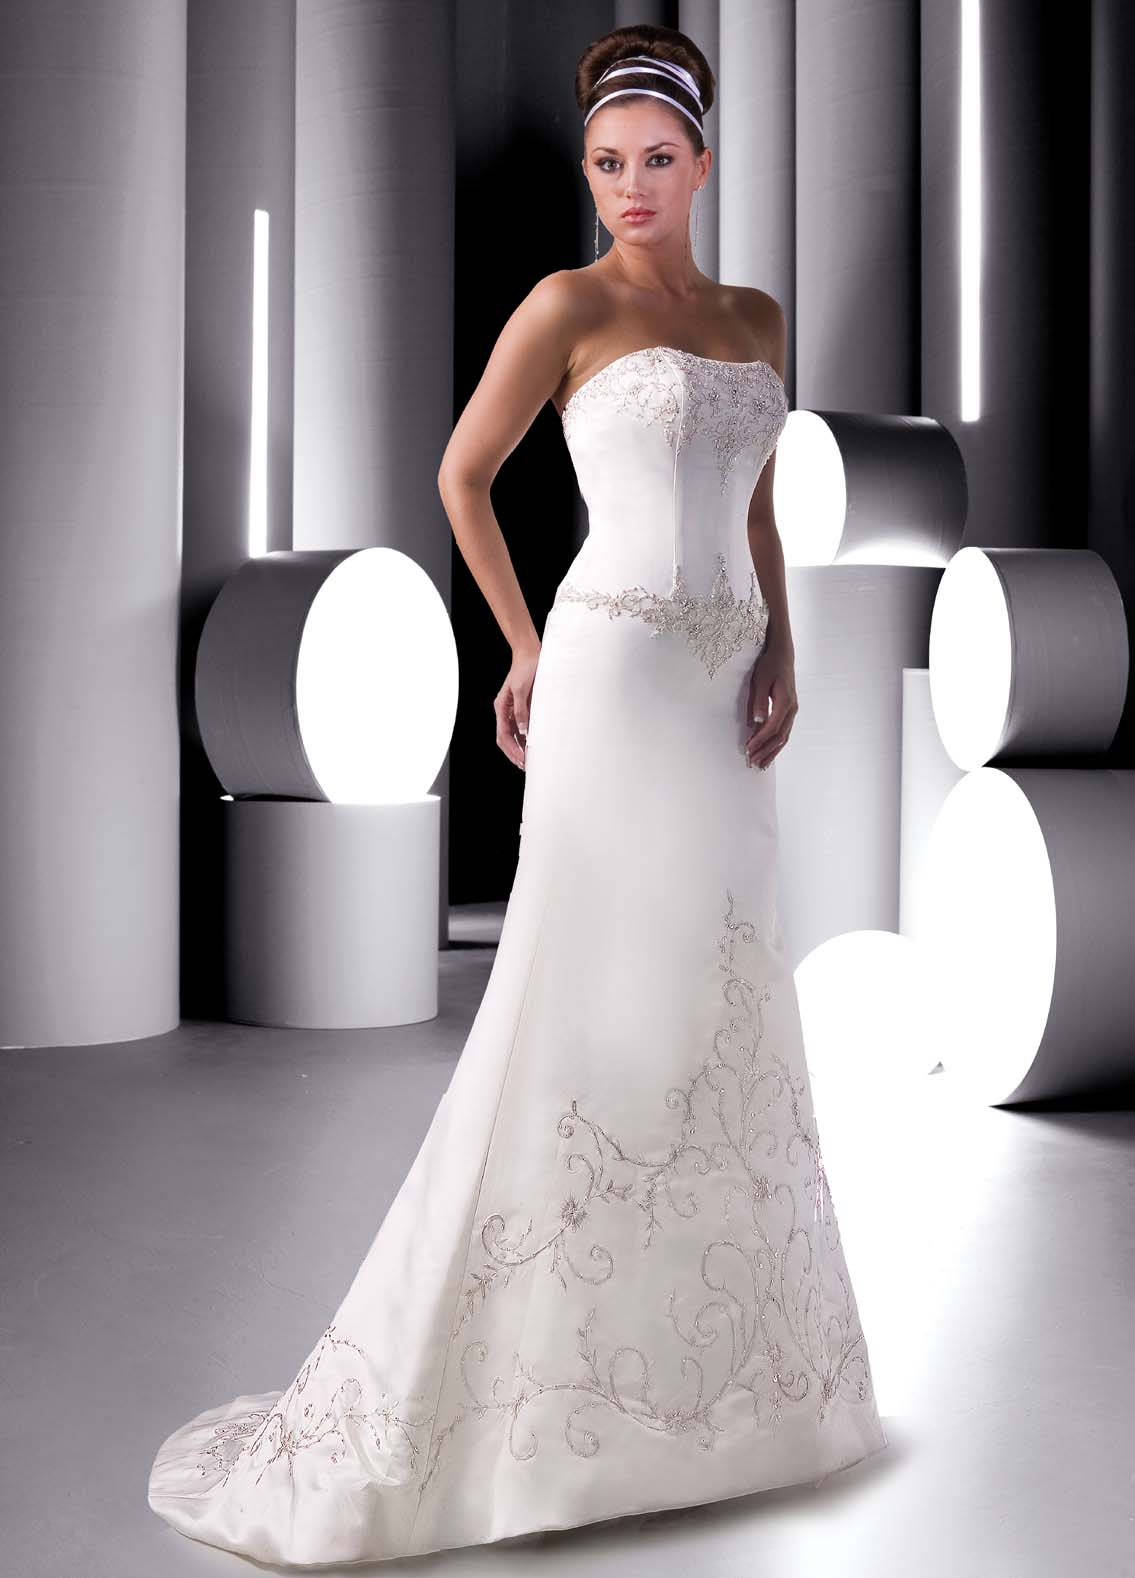 bridal gown 3 wedding dresses online cheap bridal gowns online store